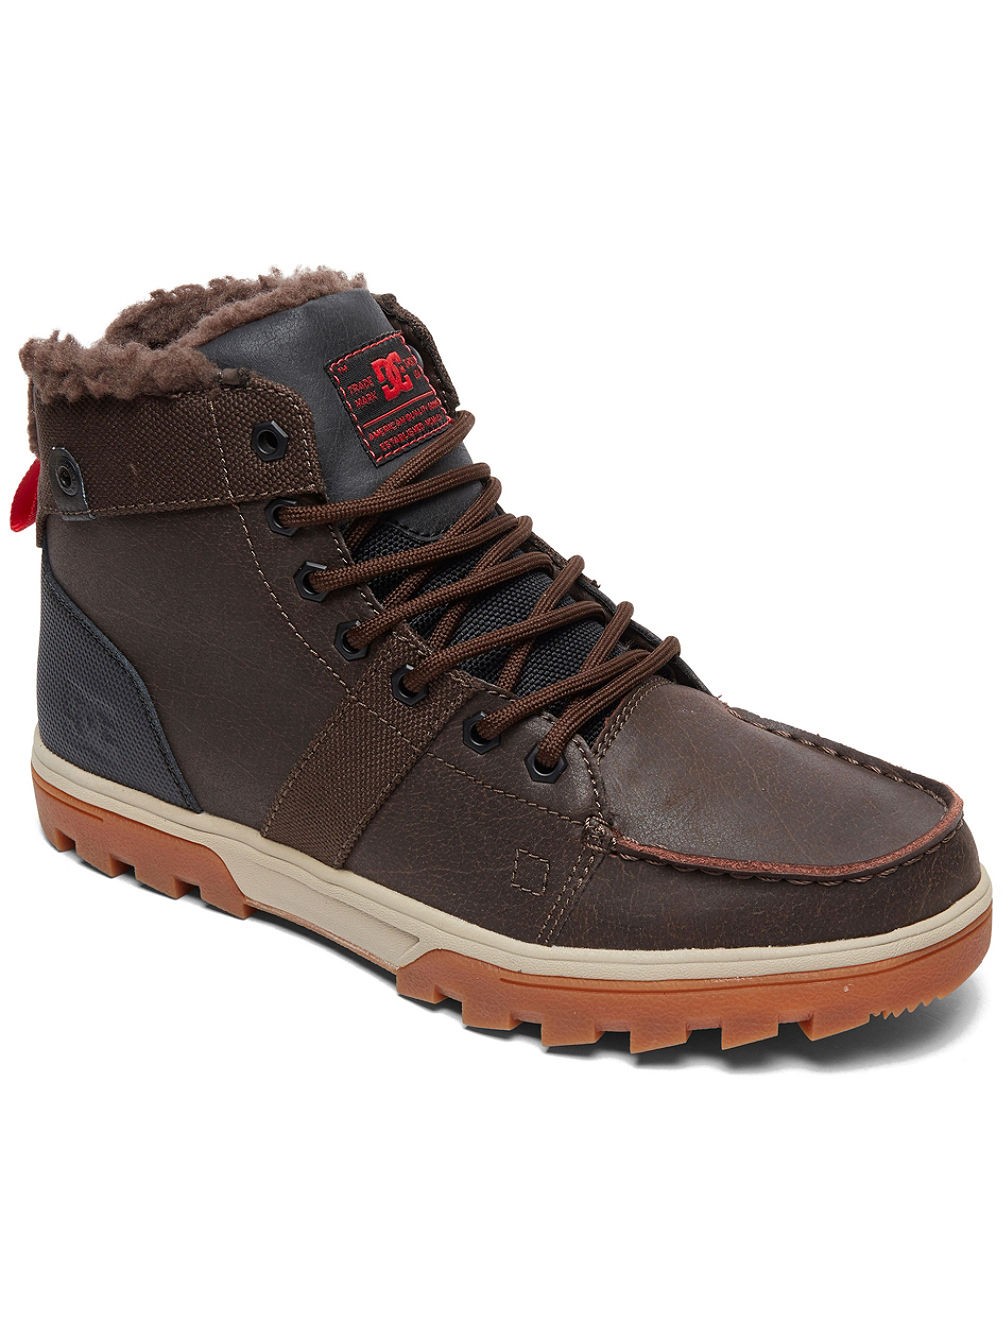 Buy DC Woodland Shoes online at blue-tomato.com